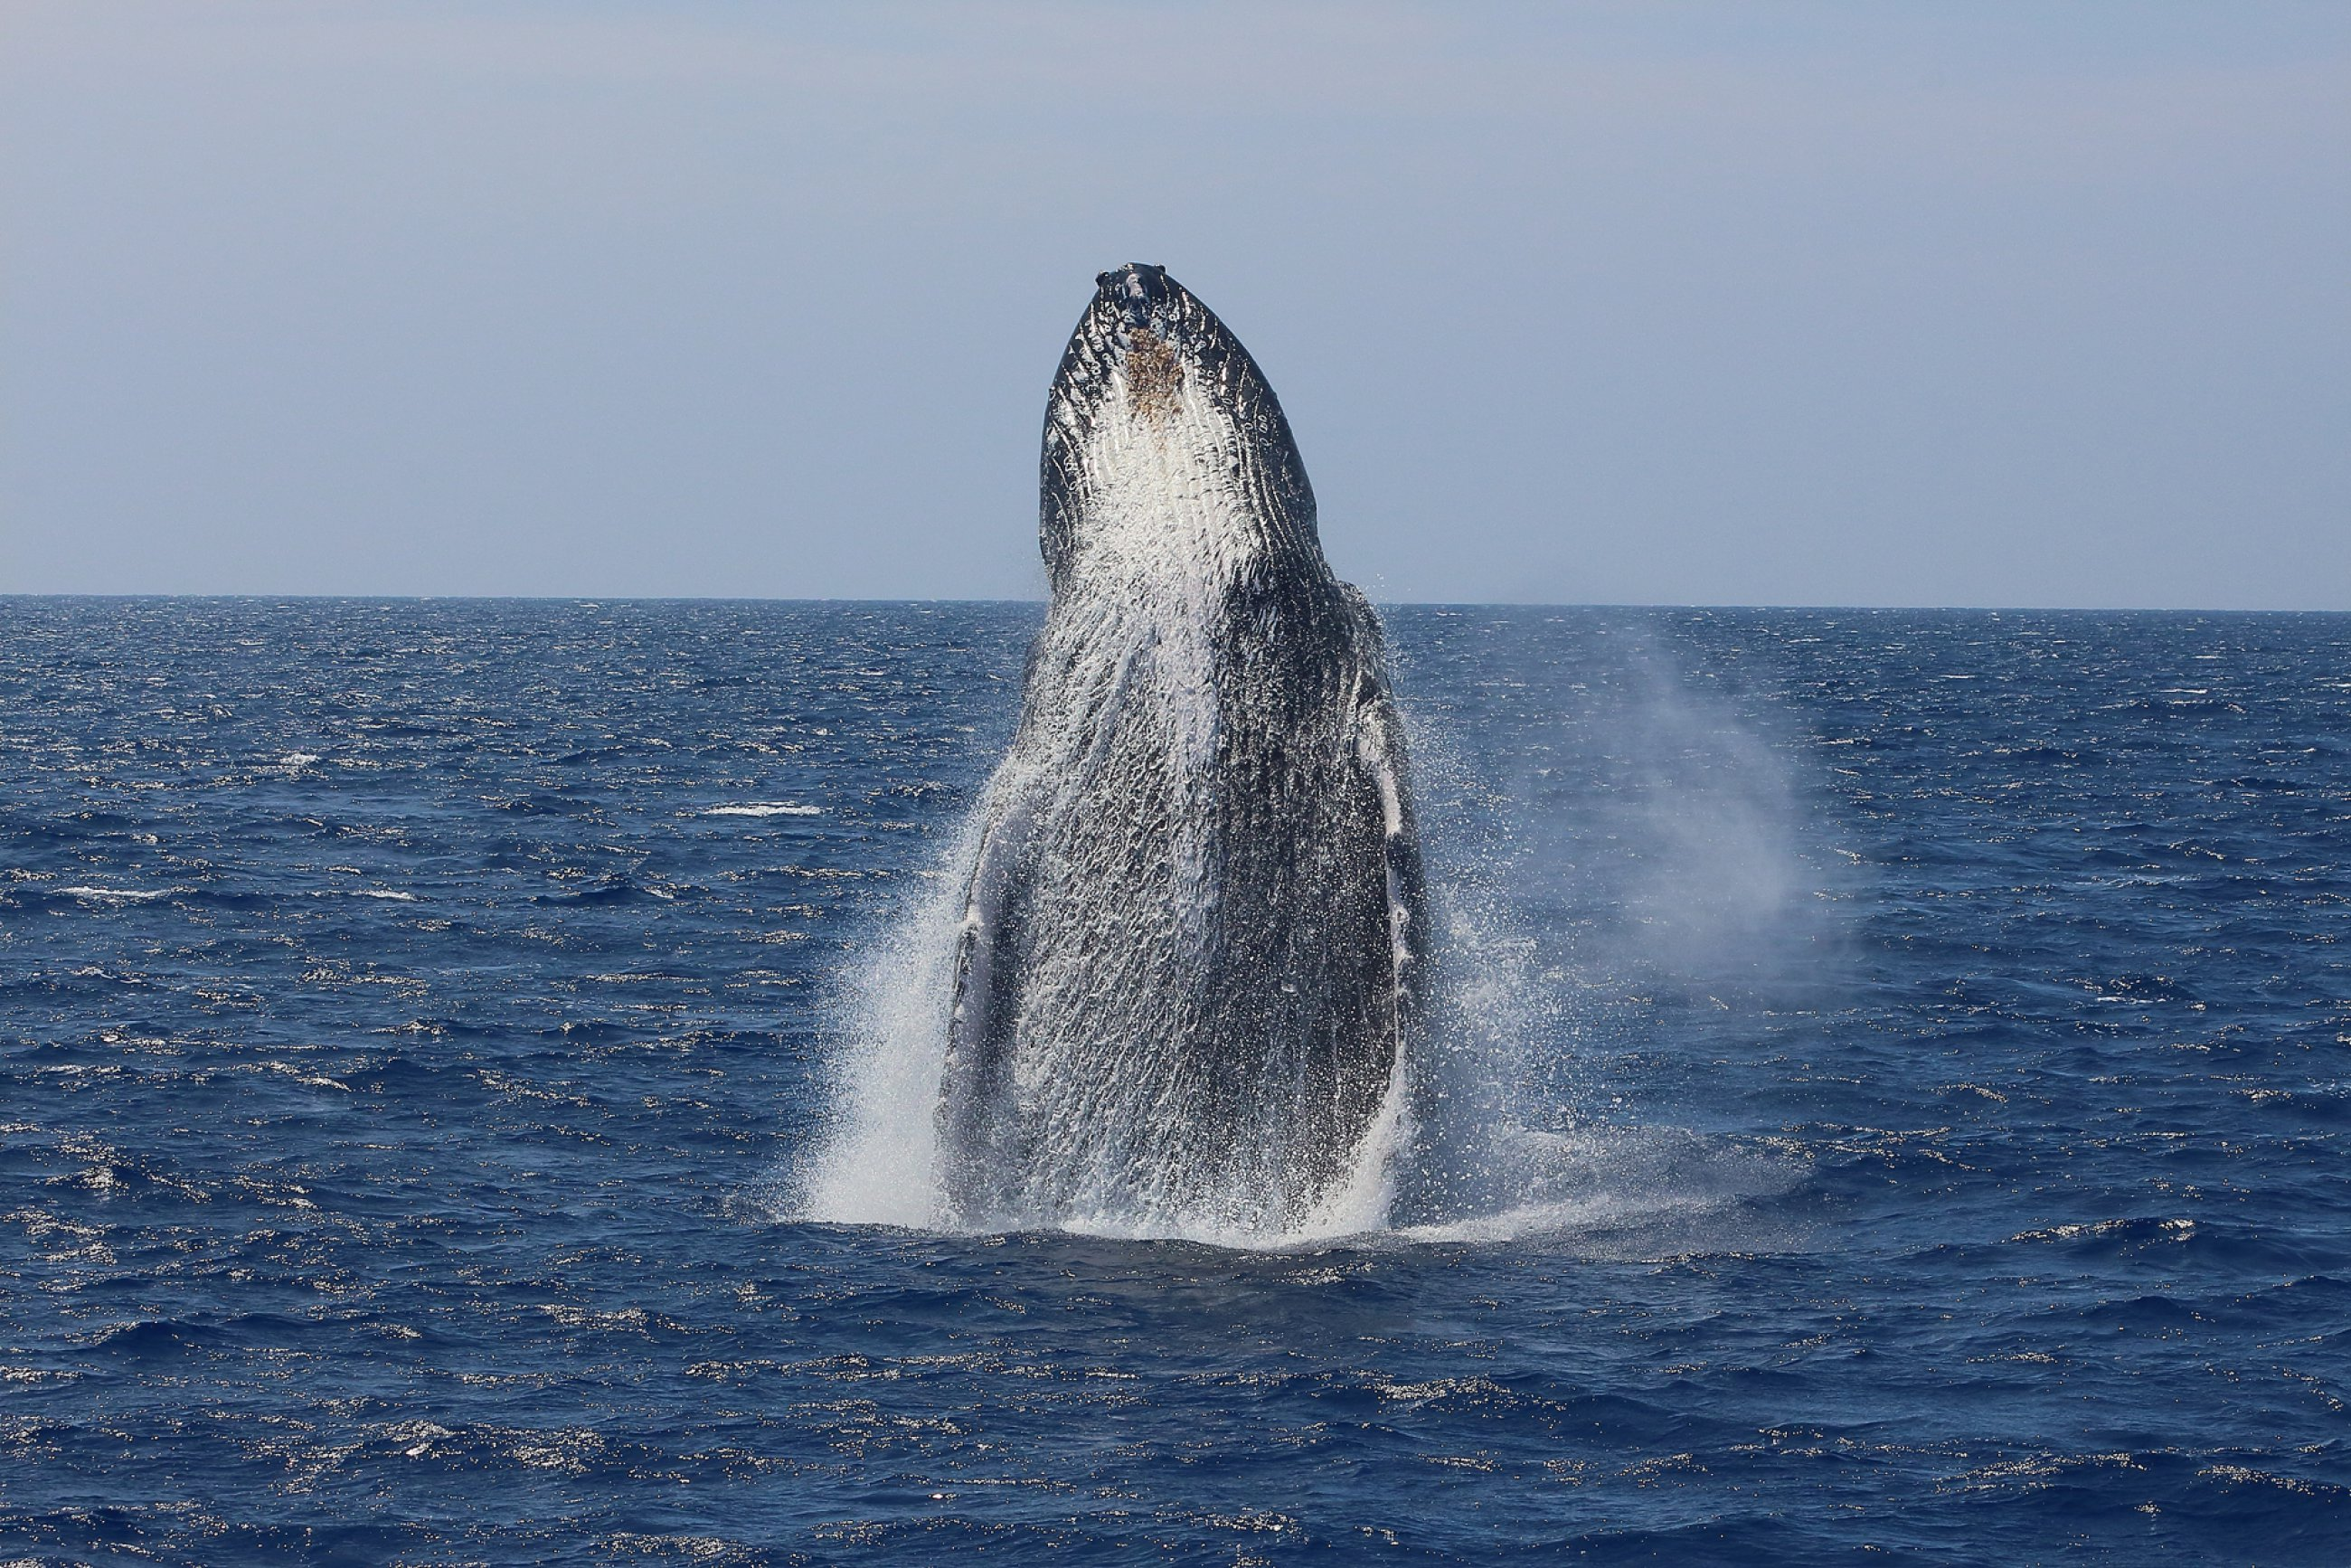 https://bubo.sk/uploads/galleries/7309/havaj-humpback-whale-megaptera-novaeangliae-breaching-out-of-the-water-in-maui.jpg